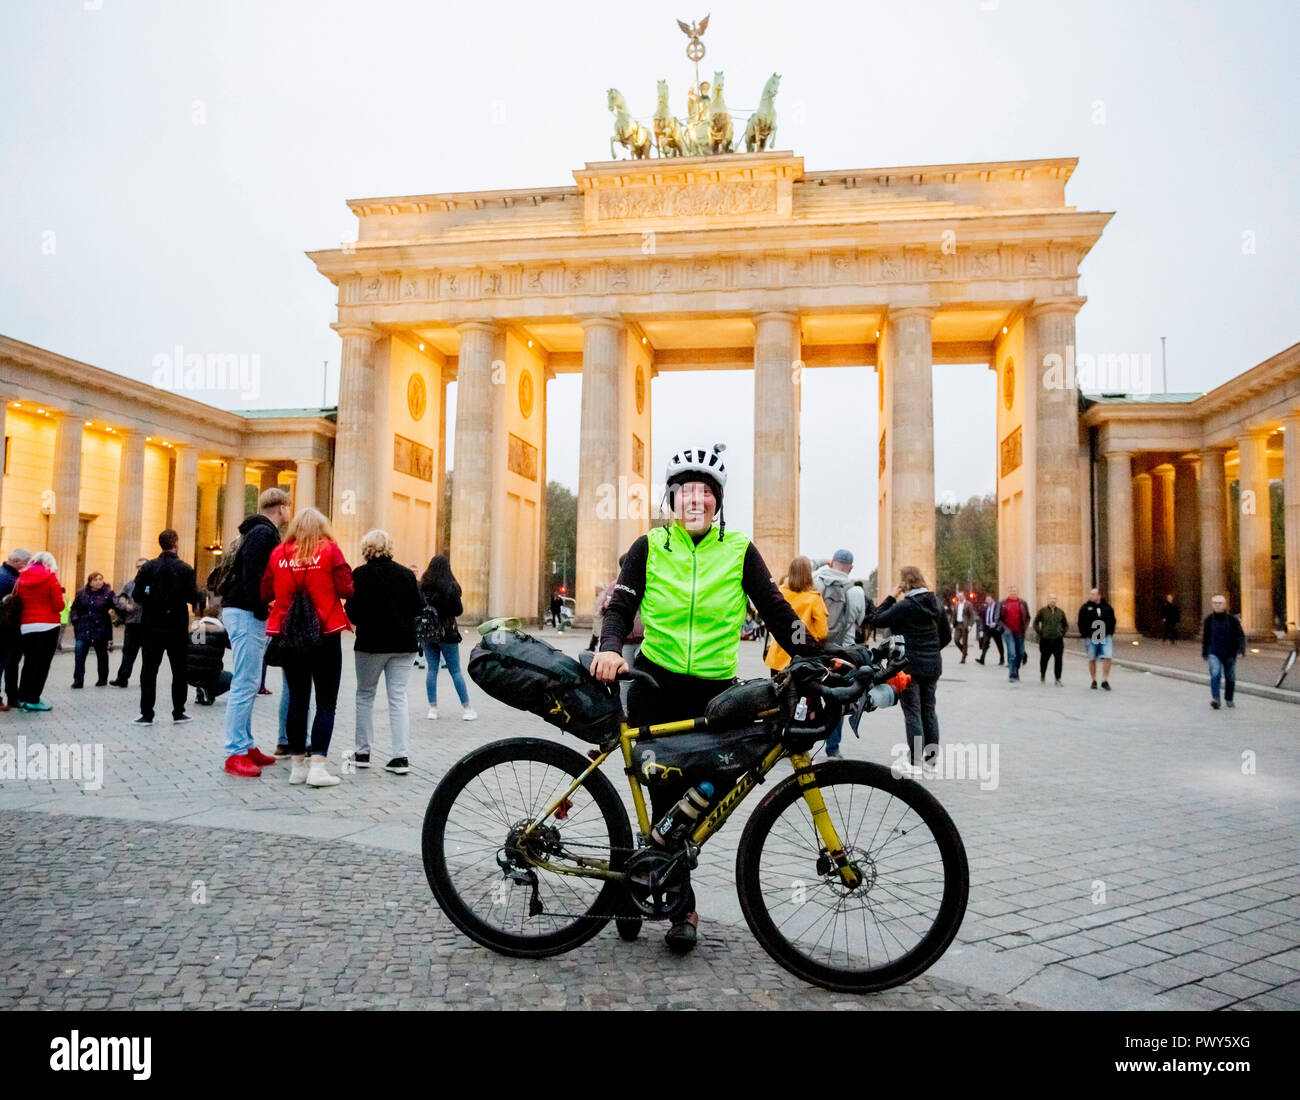 Berlin, Germany. 18th Oct, 2018. The Scottish Jenny Graham is standing at the Brandenburg Gate on her arrival after she has circumnavigated the world by bicycle. The British woman was the first woman to circumnavigate the world by bicycle alone in only 125 days. The previous world record was 144 days. Credit: Christoph Soeder/dpa/Alamy Live News - Stock Image